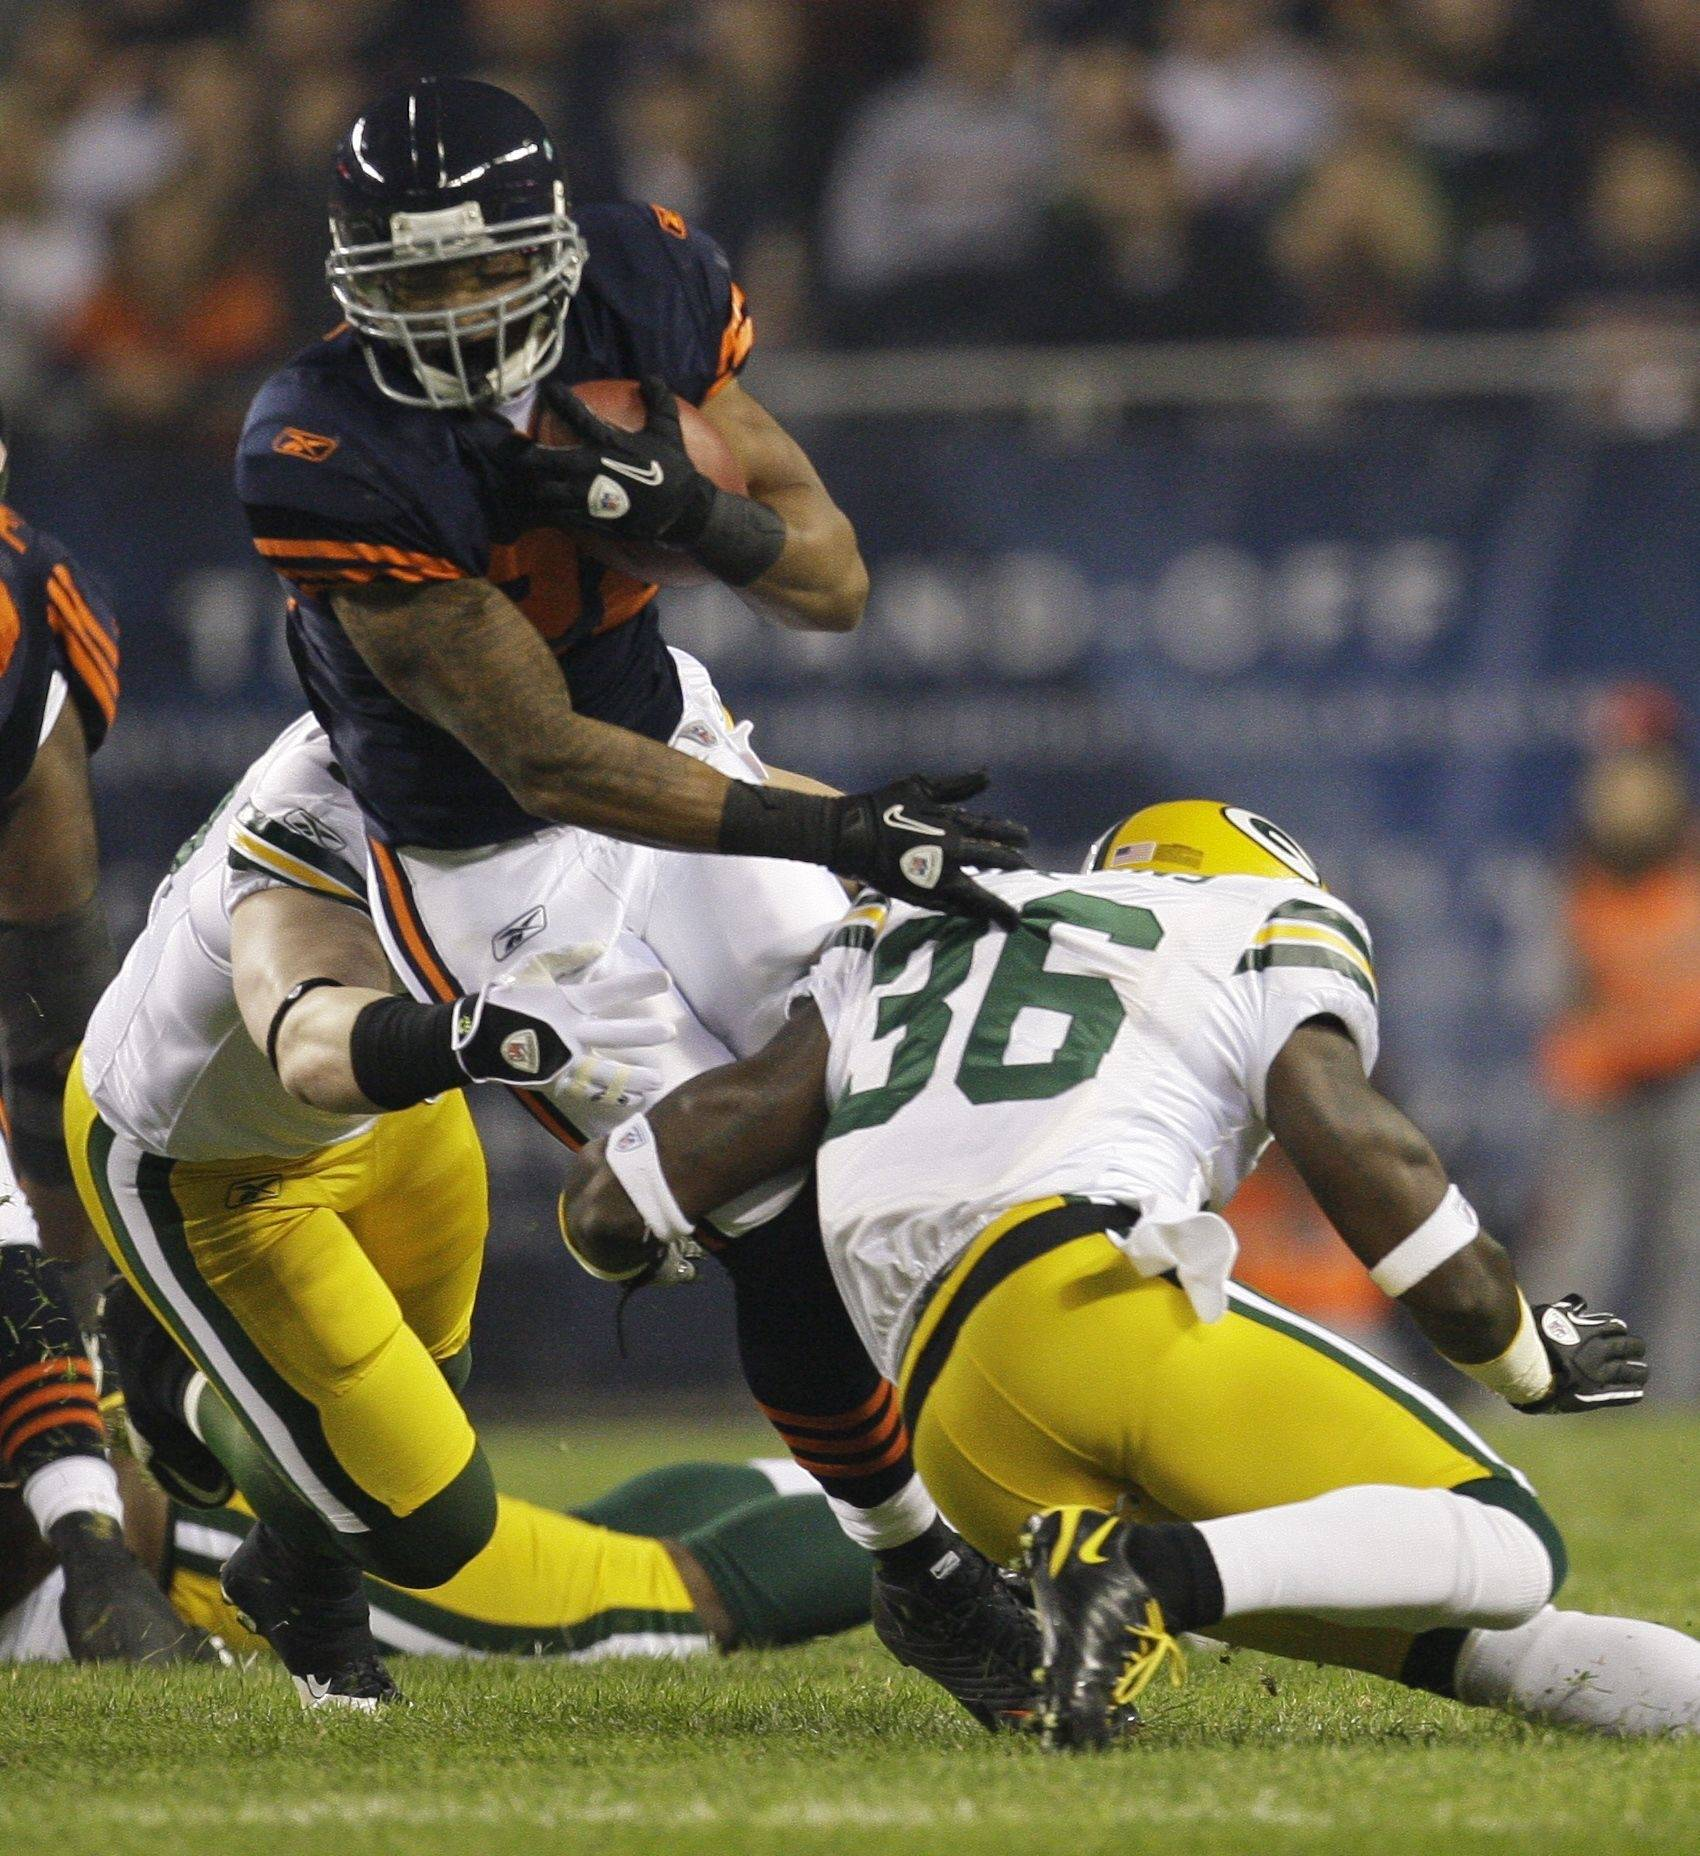 Chicago Bears running back Matt Forte is tackled by Green Bay Packers safety Nick Collins (36) and linebacker A.J. Hawk during the first half of an NFL football game Monday, Sept. 27, 2010, in Chicago.